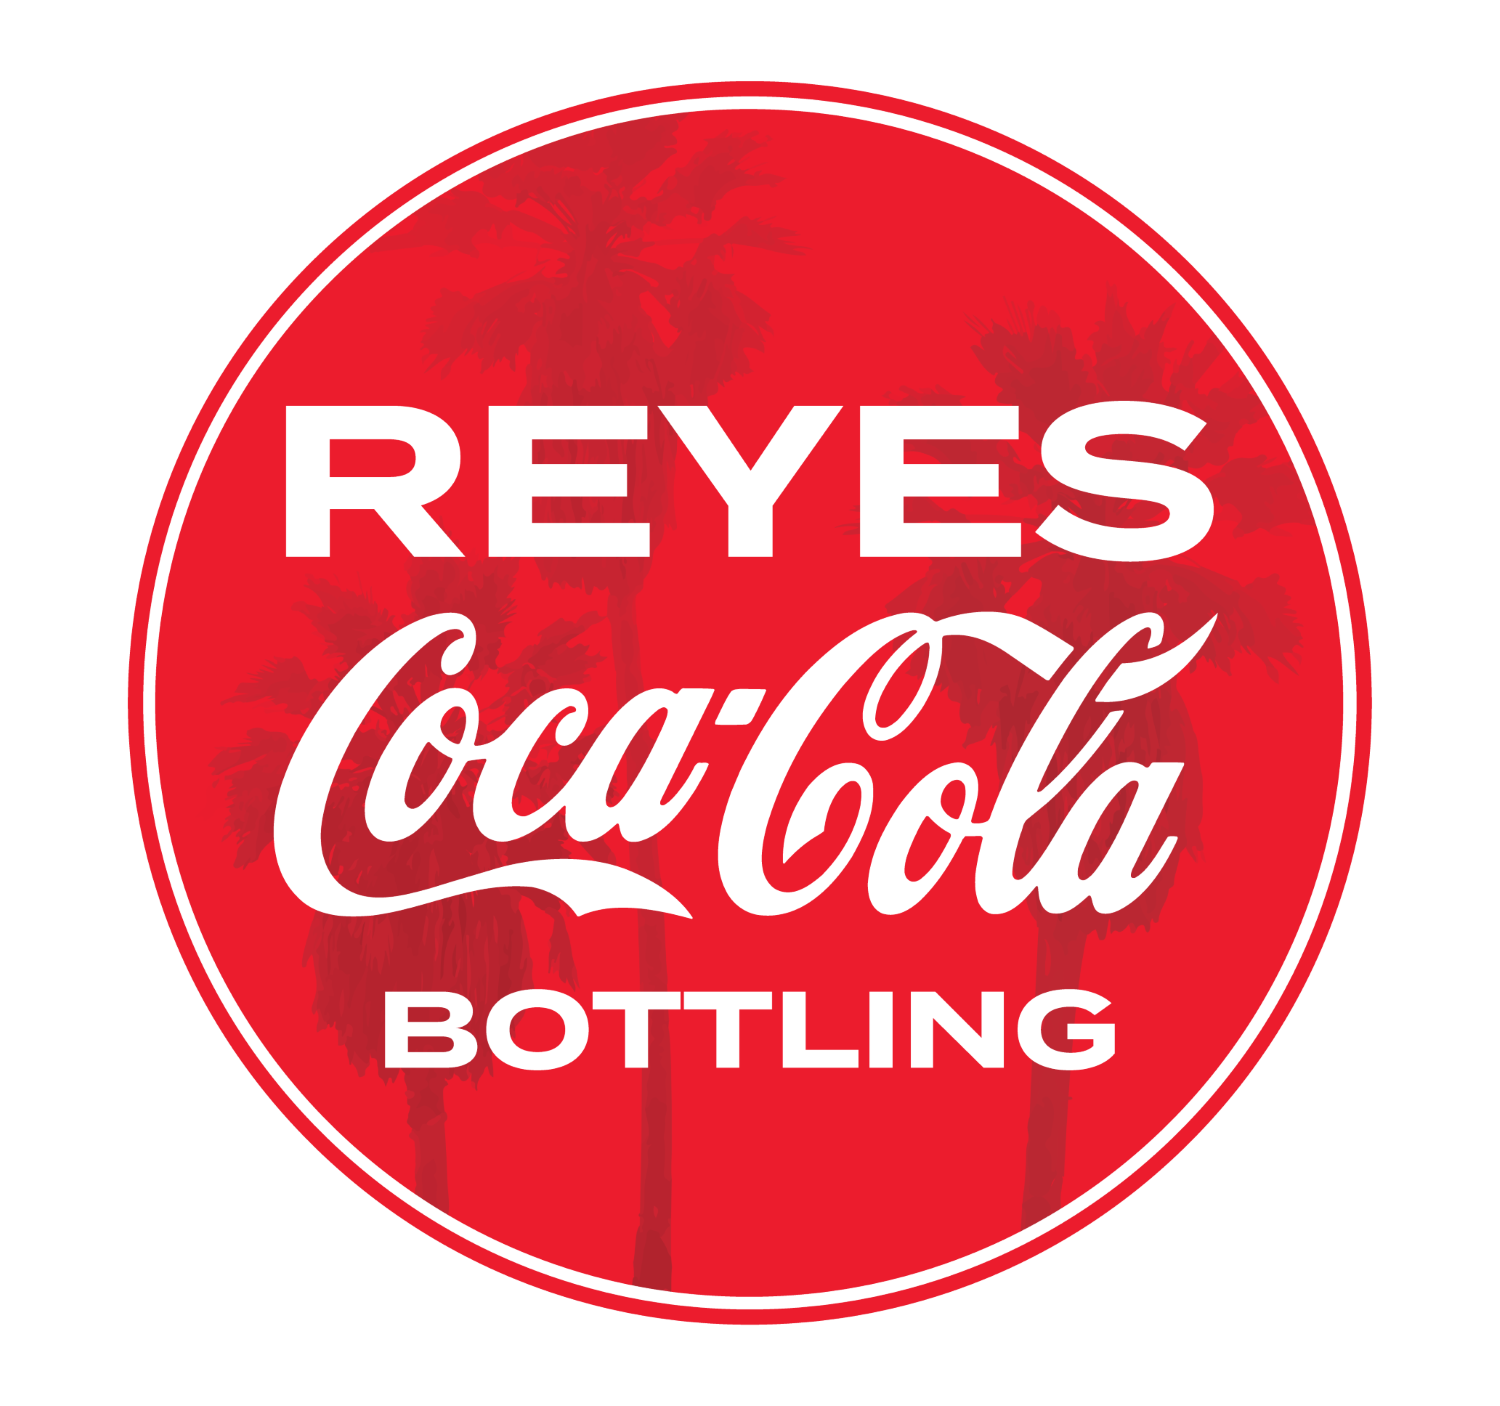 Kick Up Your Heels 2019 is presented by REYES Coca-Cola Bottling~ Thank you!